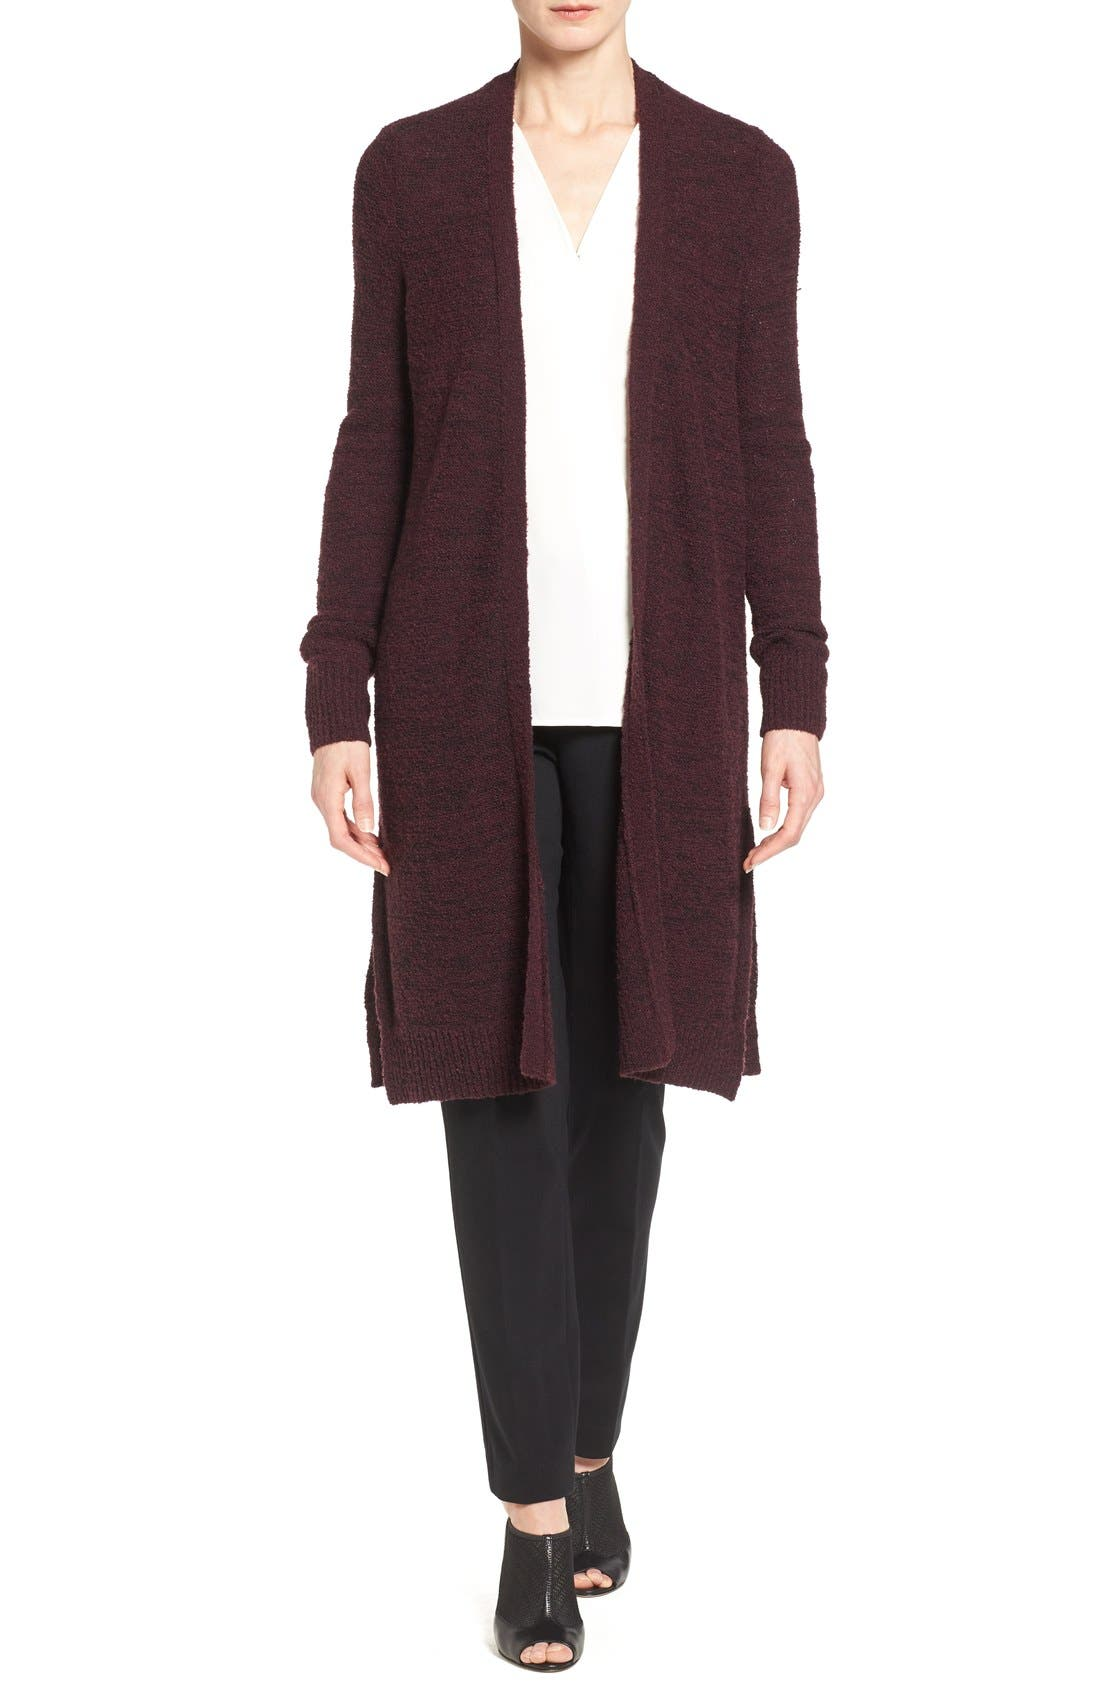 Alternate Image 1 Selected - Halogen® Long Side Slit Cardigan (Regular & Petite)